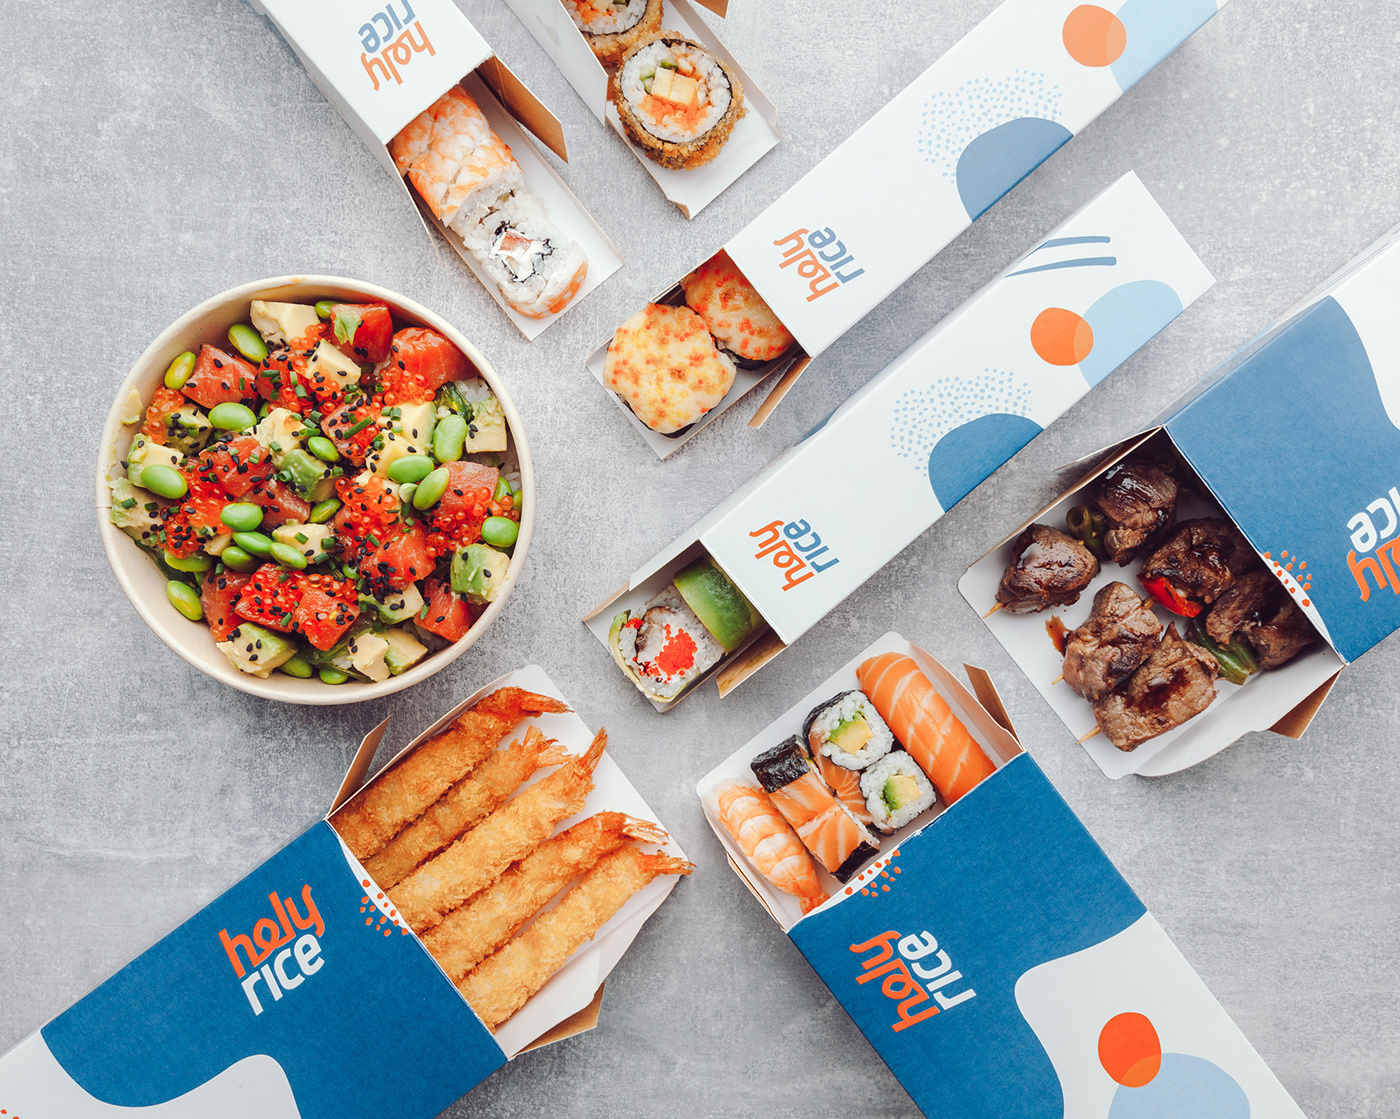 asian branding  Ecommerce food delivery Packaging smoothie Sushi wok